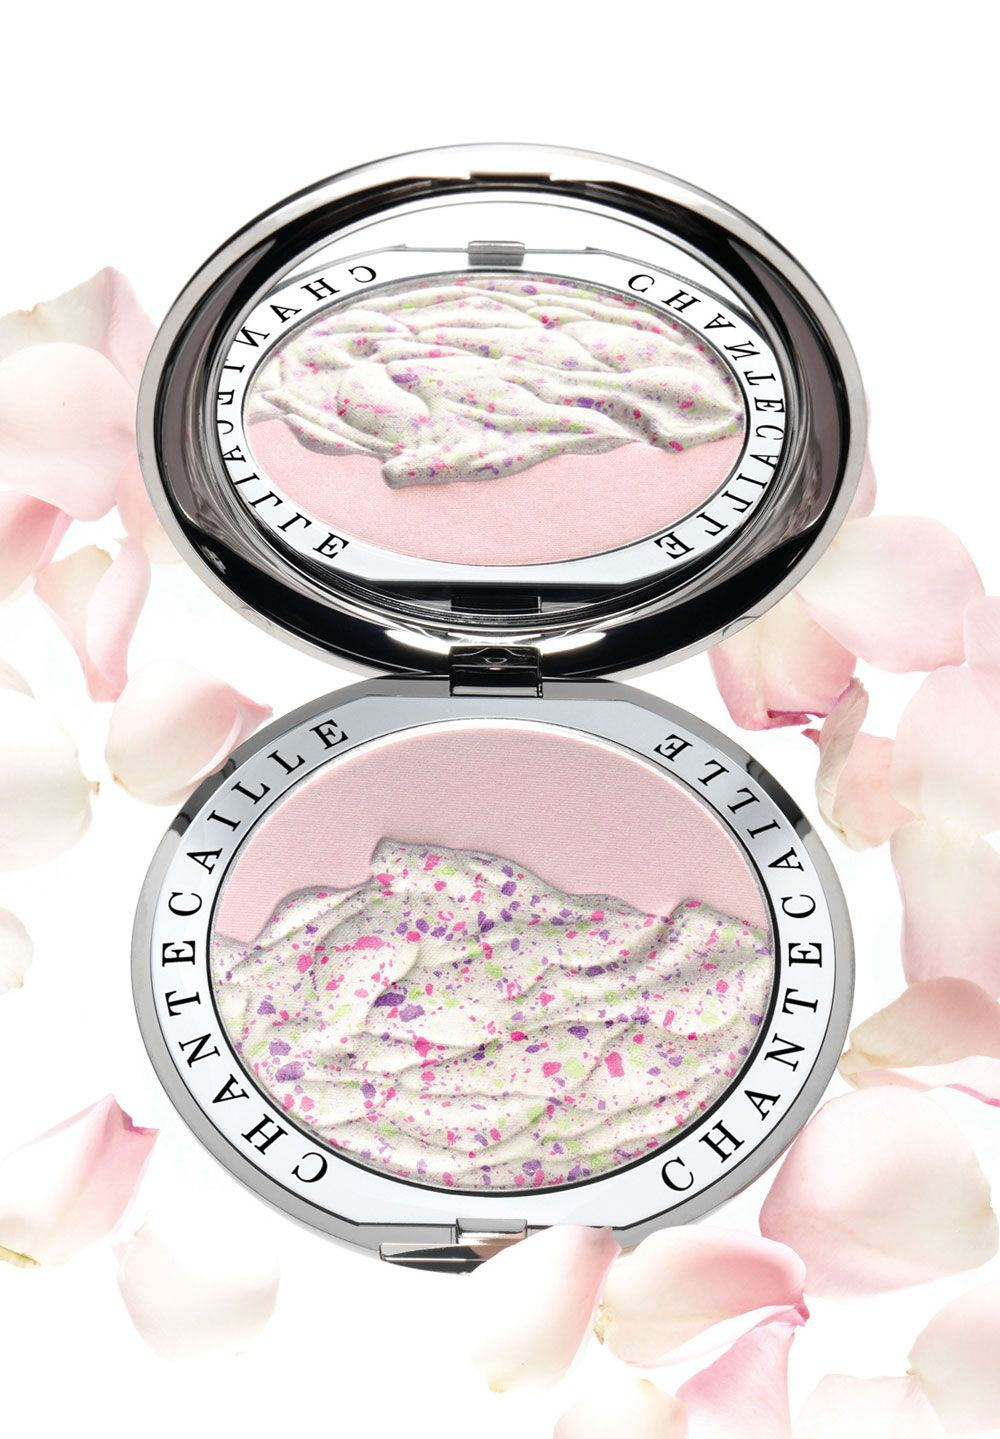 CHANTECAILLE レ・ペタル・ド・ローズ Beauty, Makeup cosmetics, Best